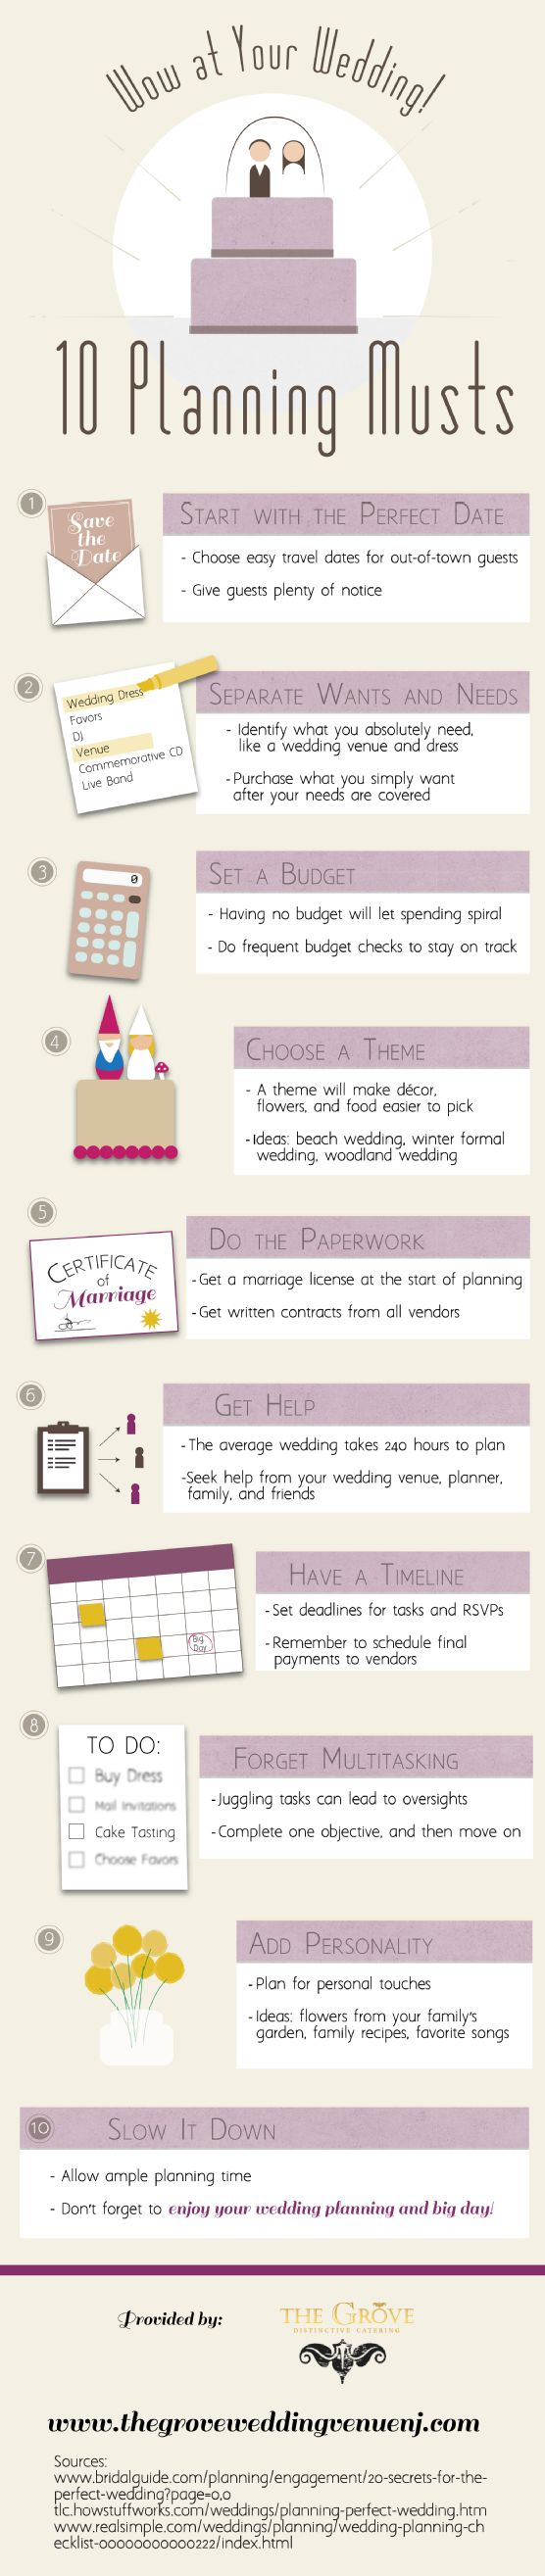 Wow at Your Wedding: 10 Planning Musts